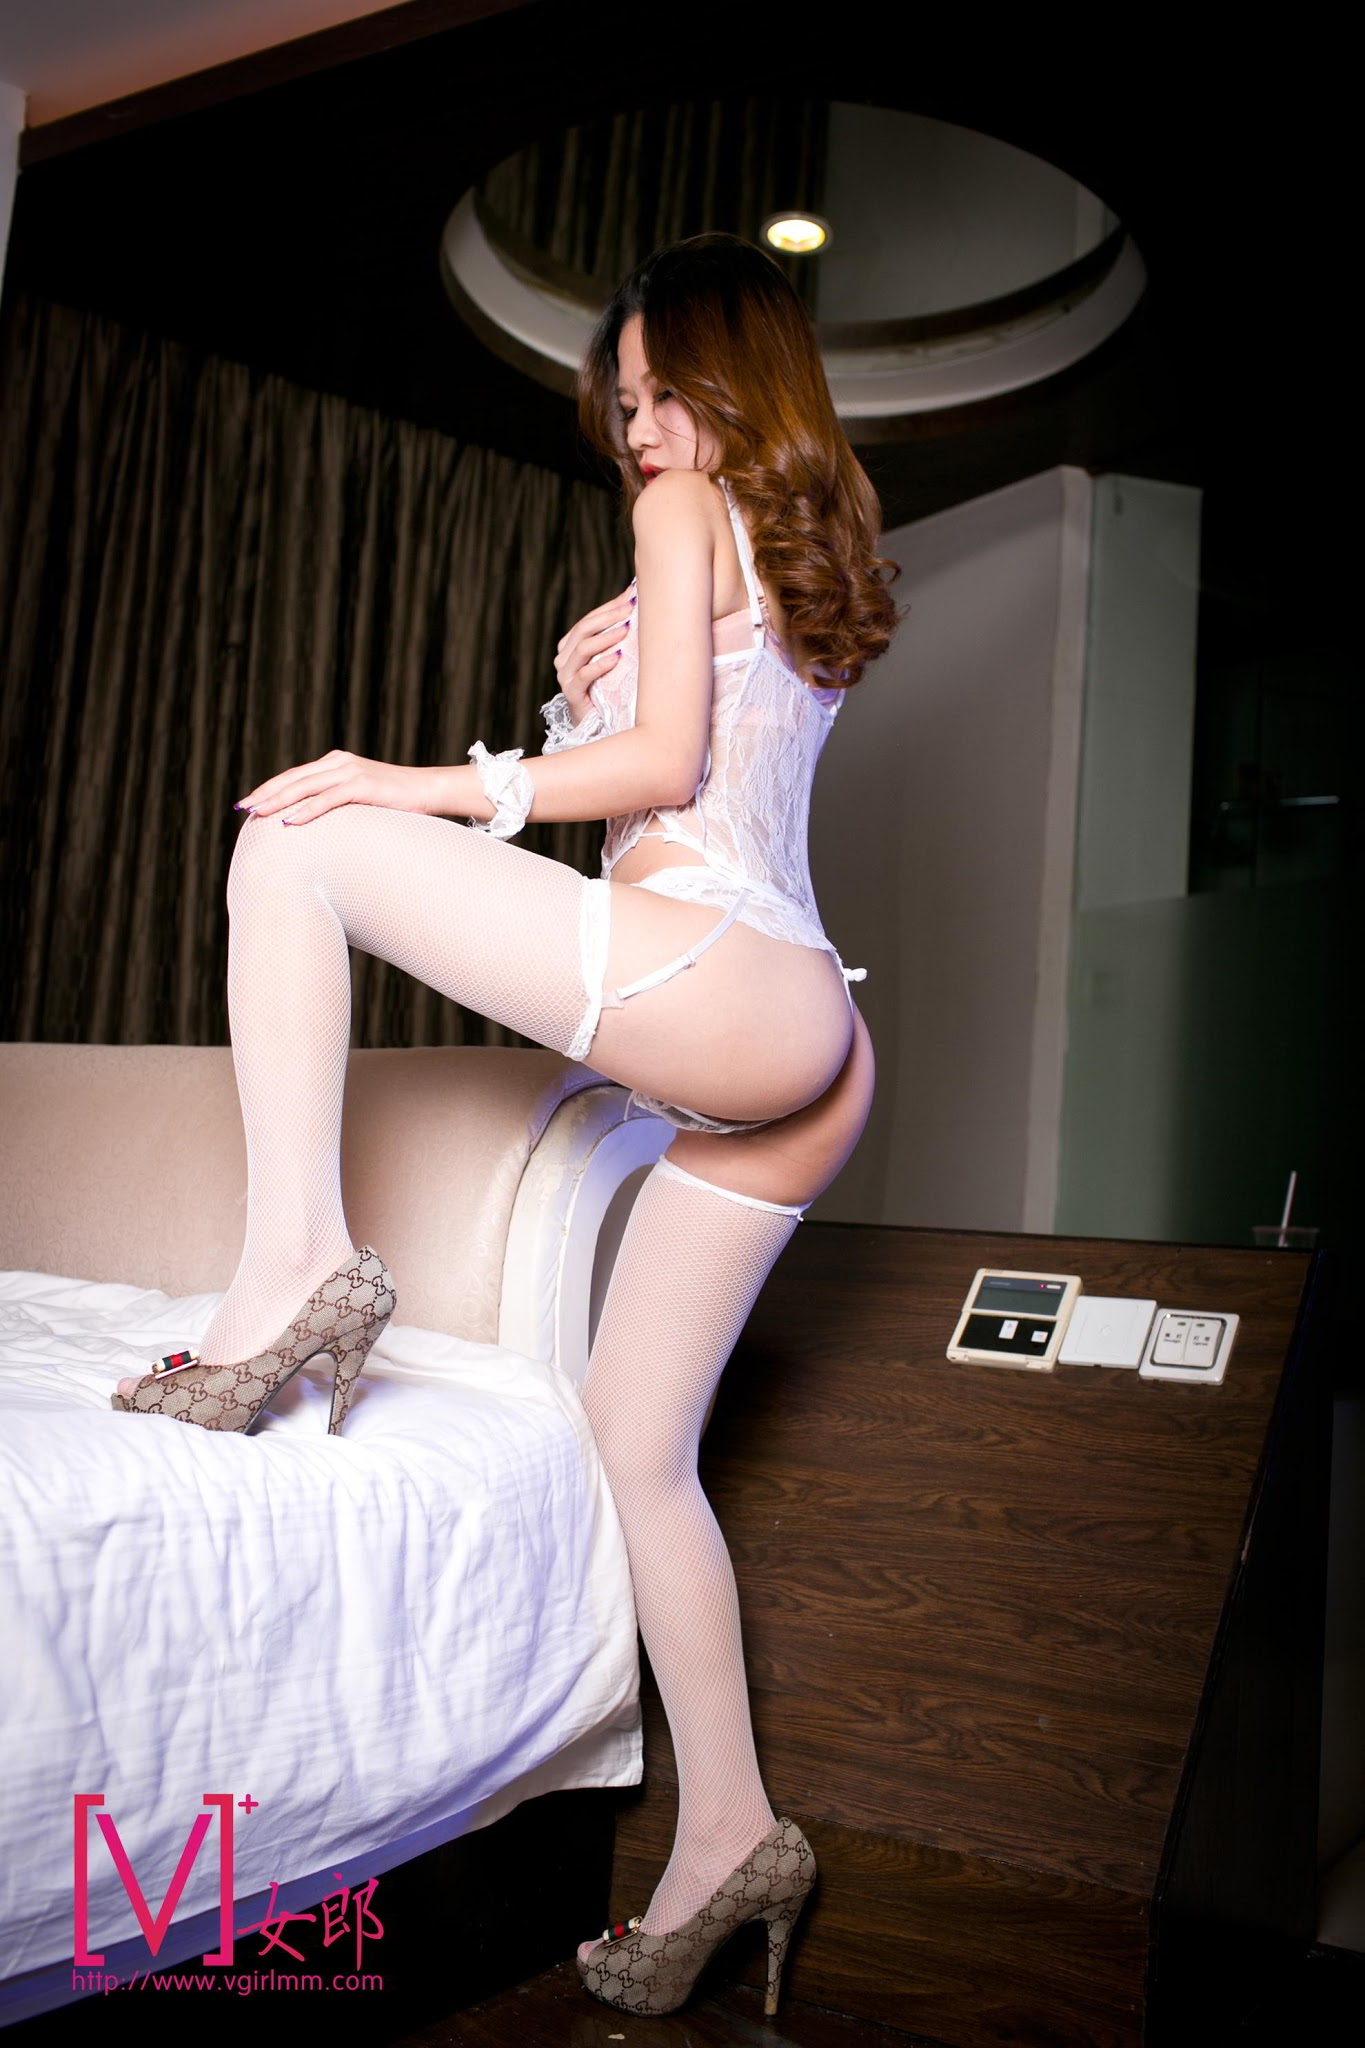 vGirlmm Lily Hot Nurse Cosplay Artistic Nude Photo Gallery ...